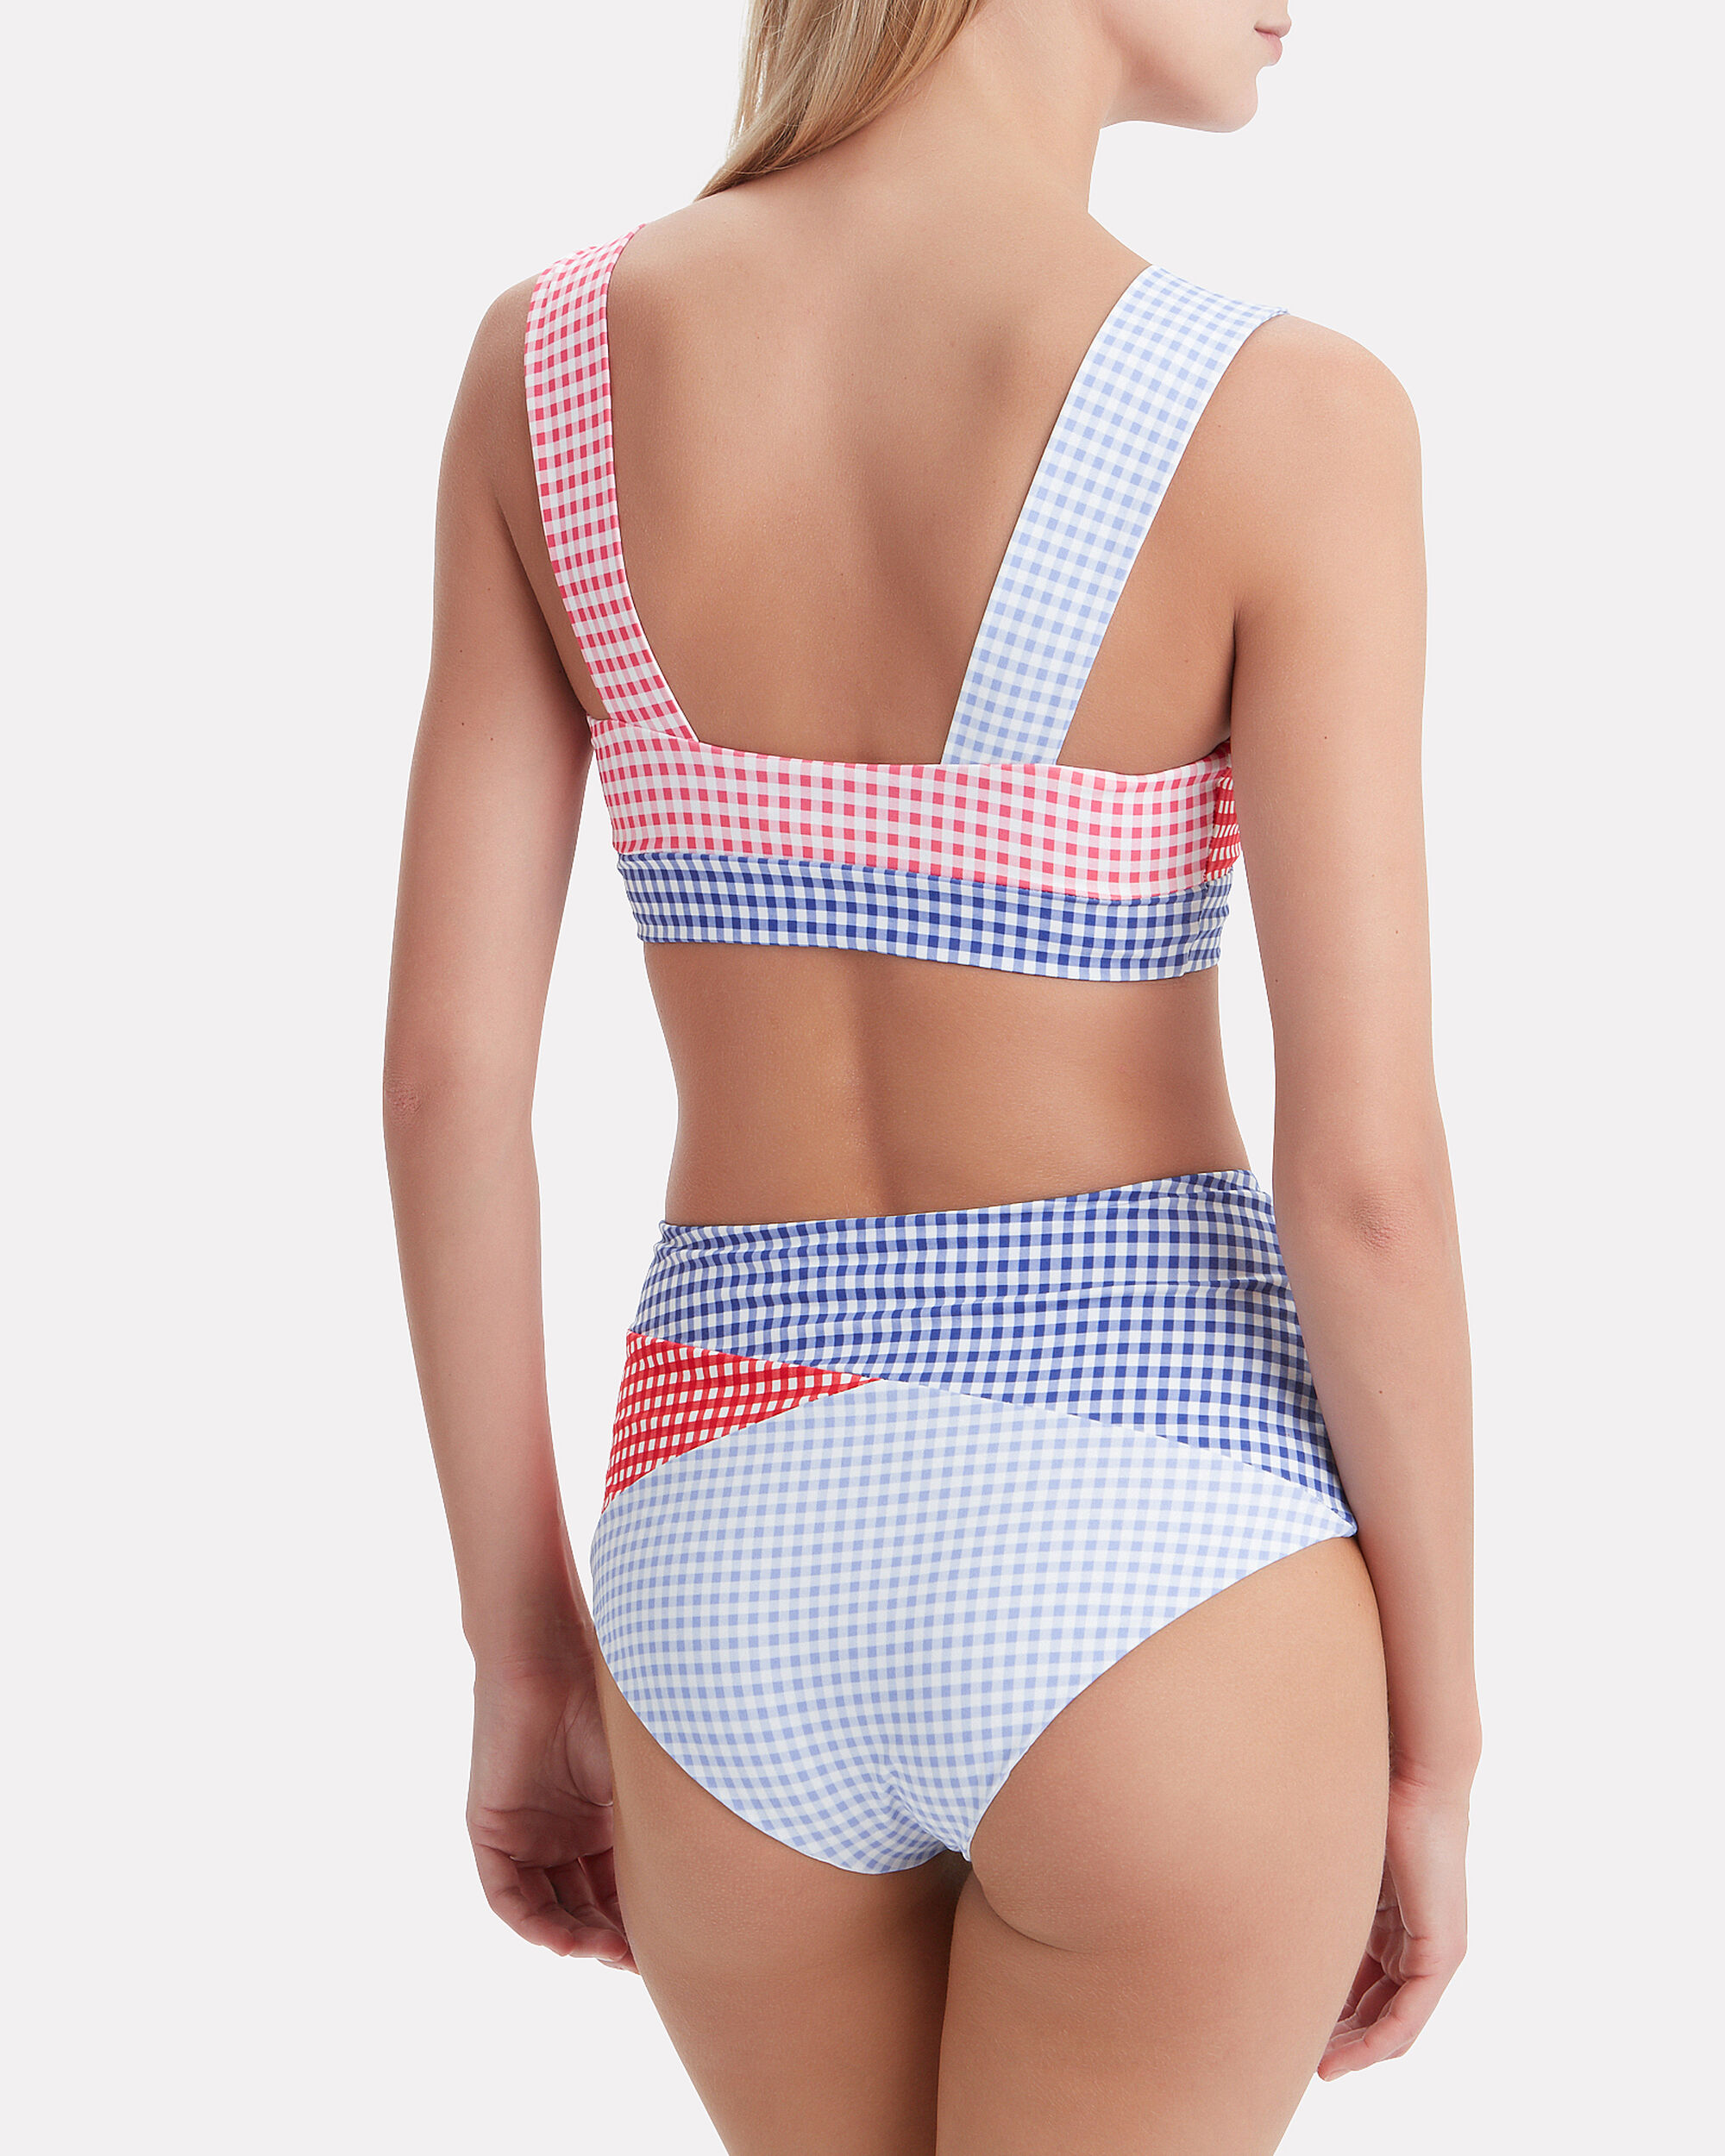 Sagaponack Gingham Bikini Top, LIGHT BLUE/NAVY/RED, hi-res